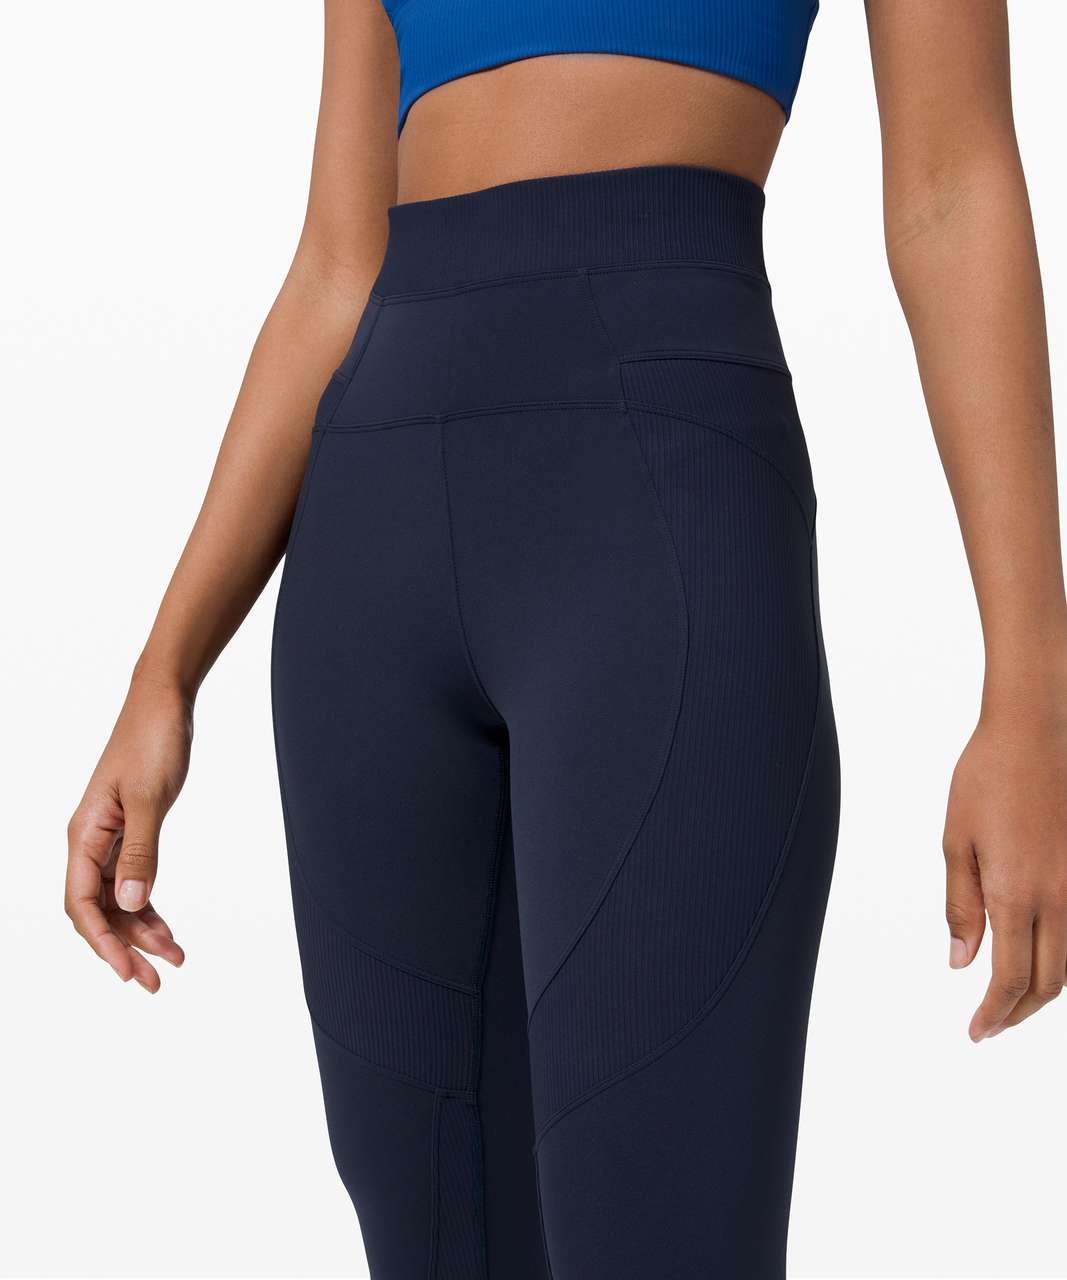 "Lululemon New Ambition Super High-Rise Tight 25"" - True Navy"